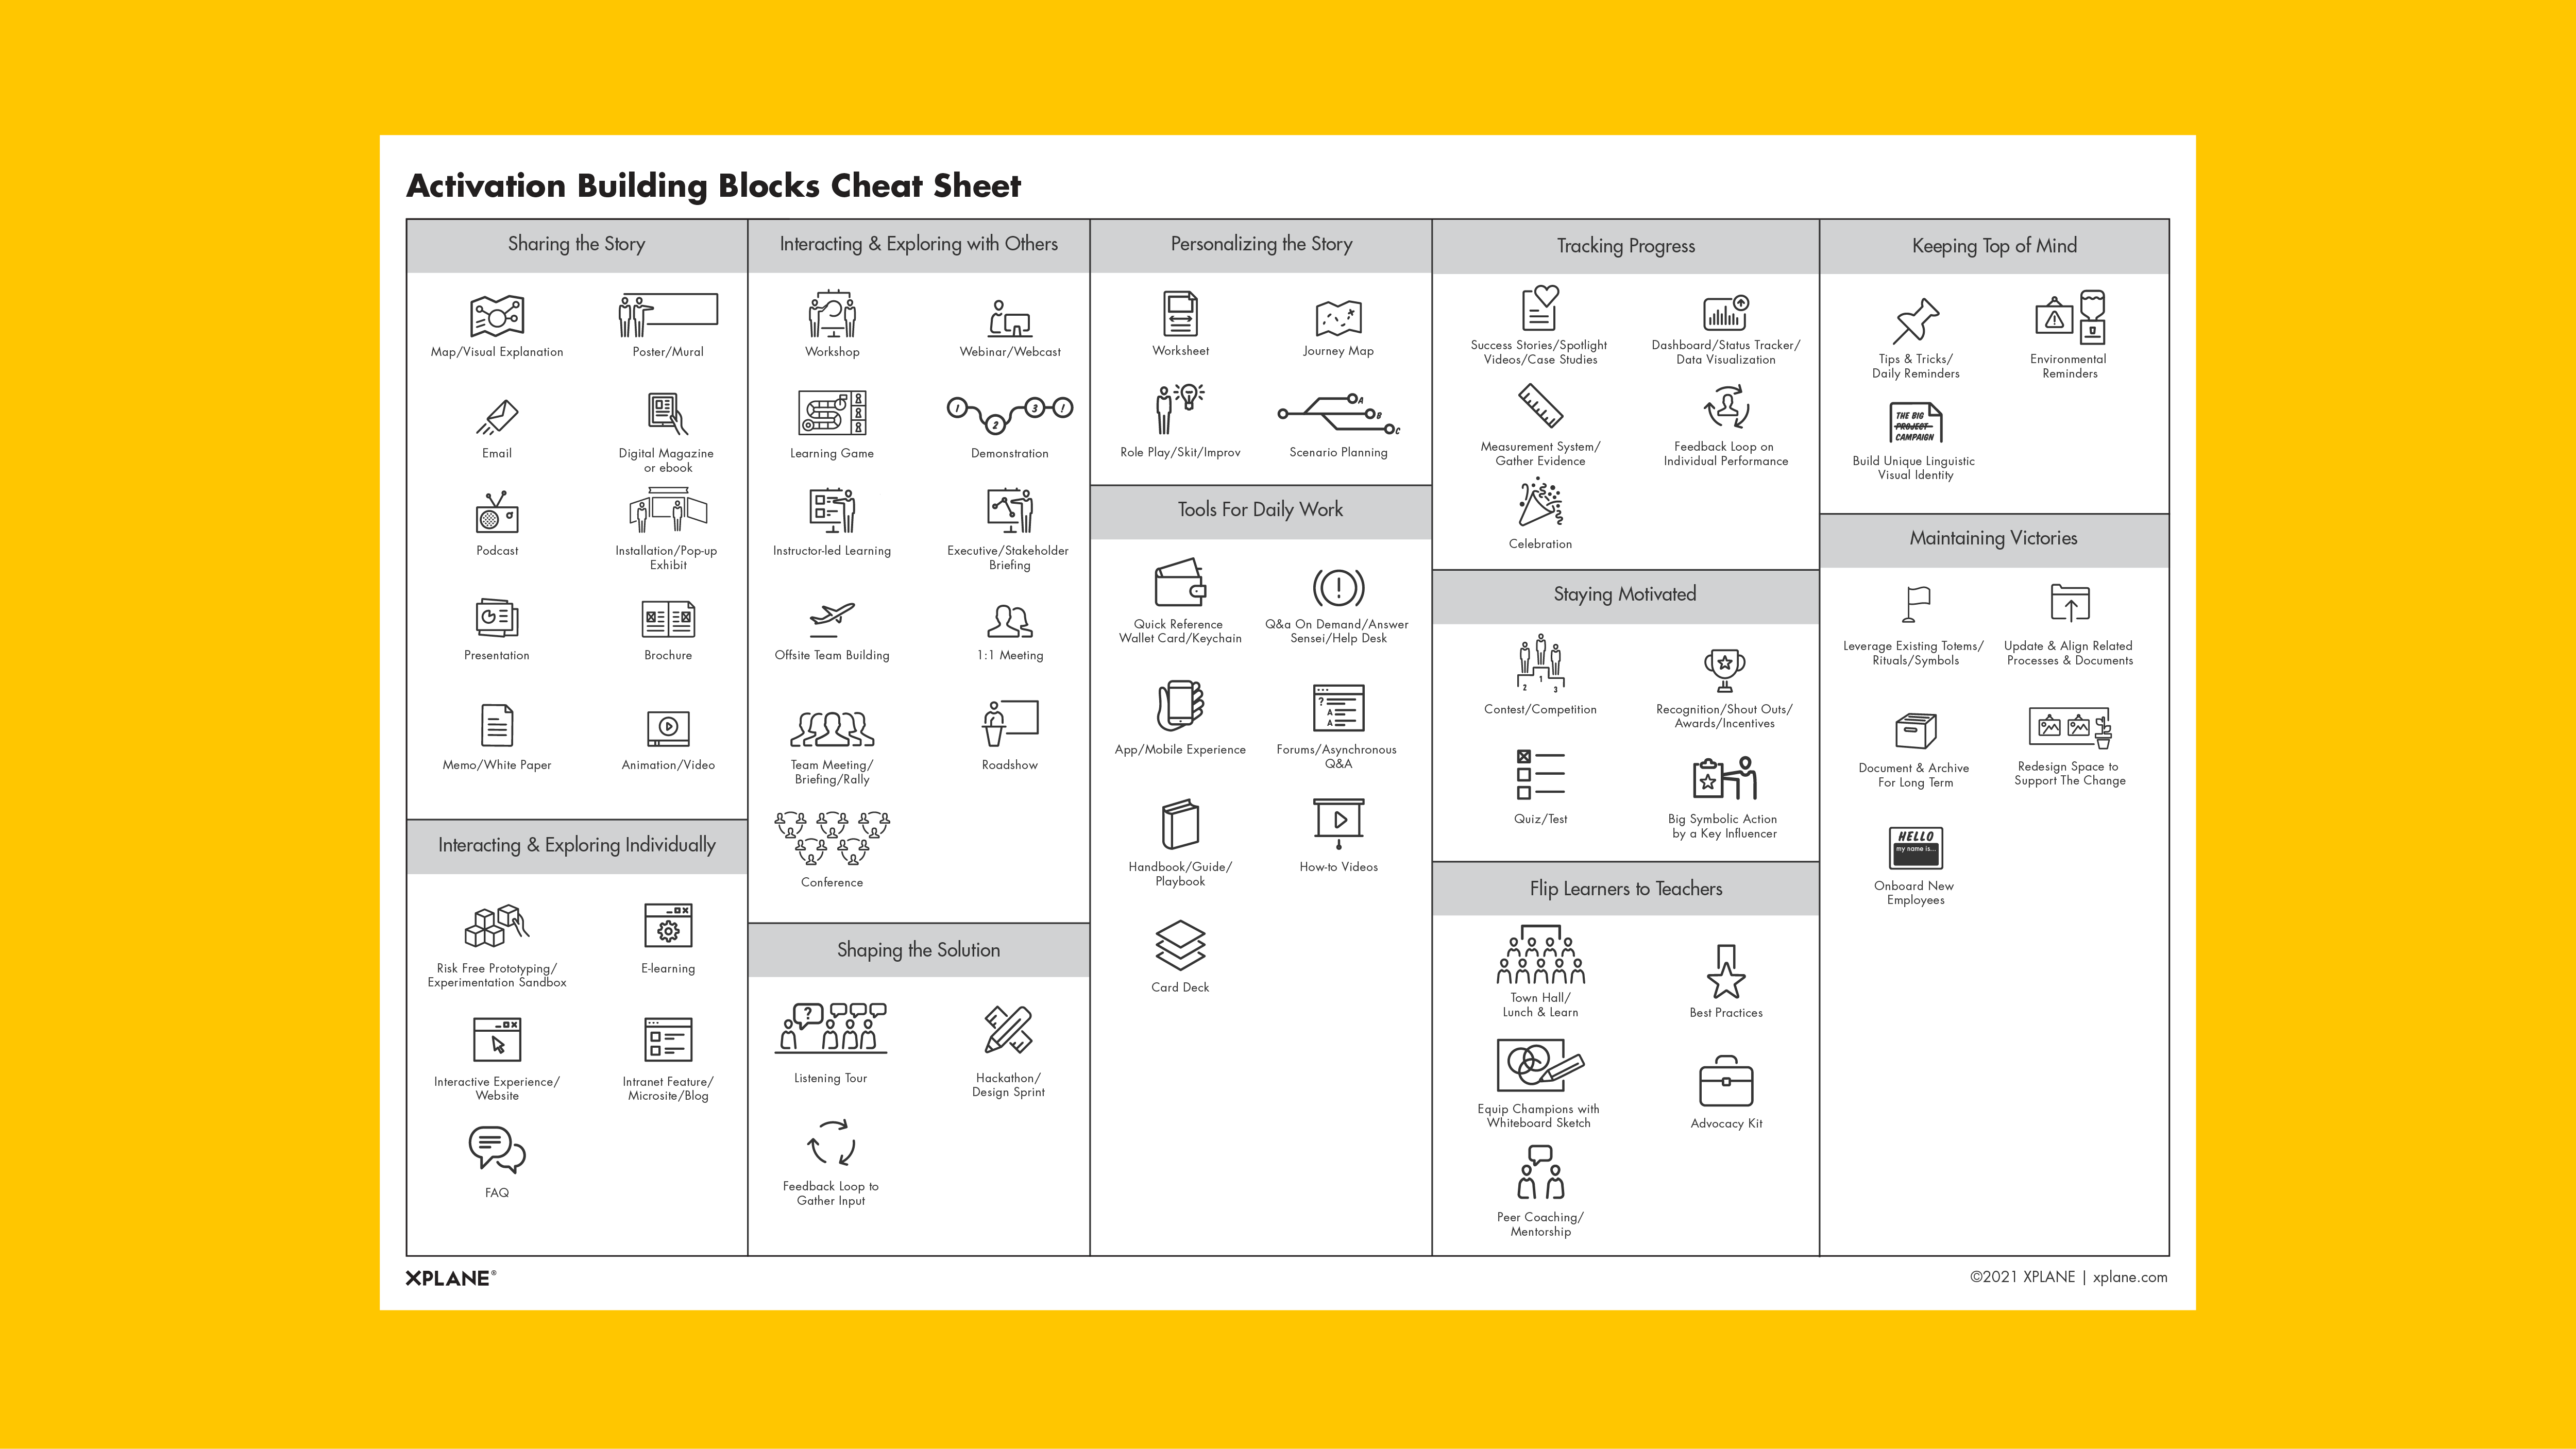 Activation Building Blocks worksheet against yellow background